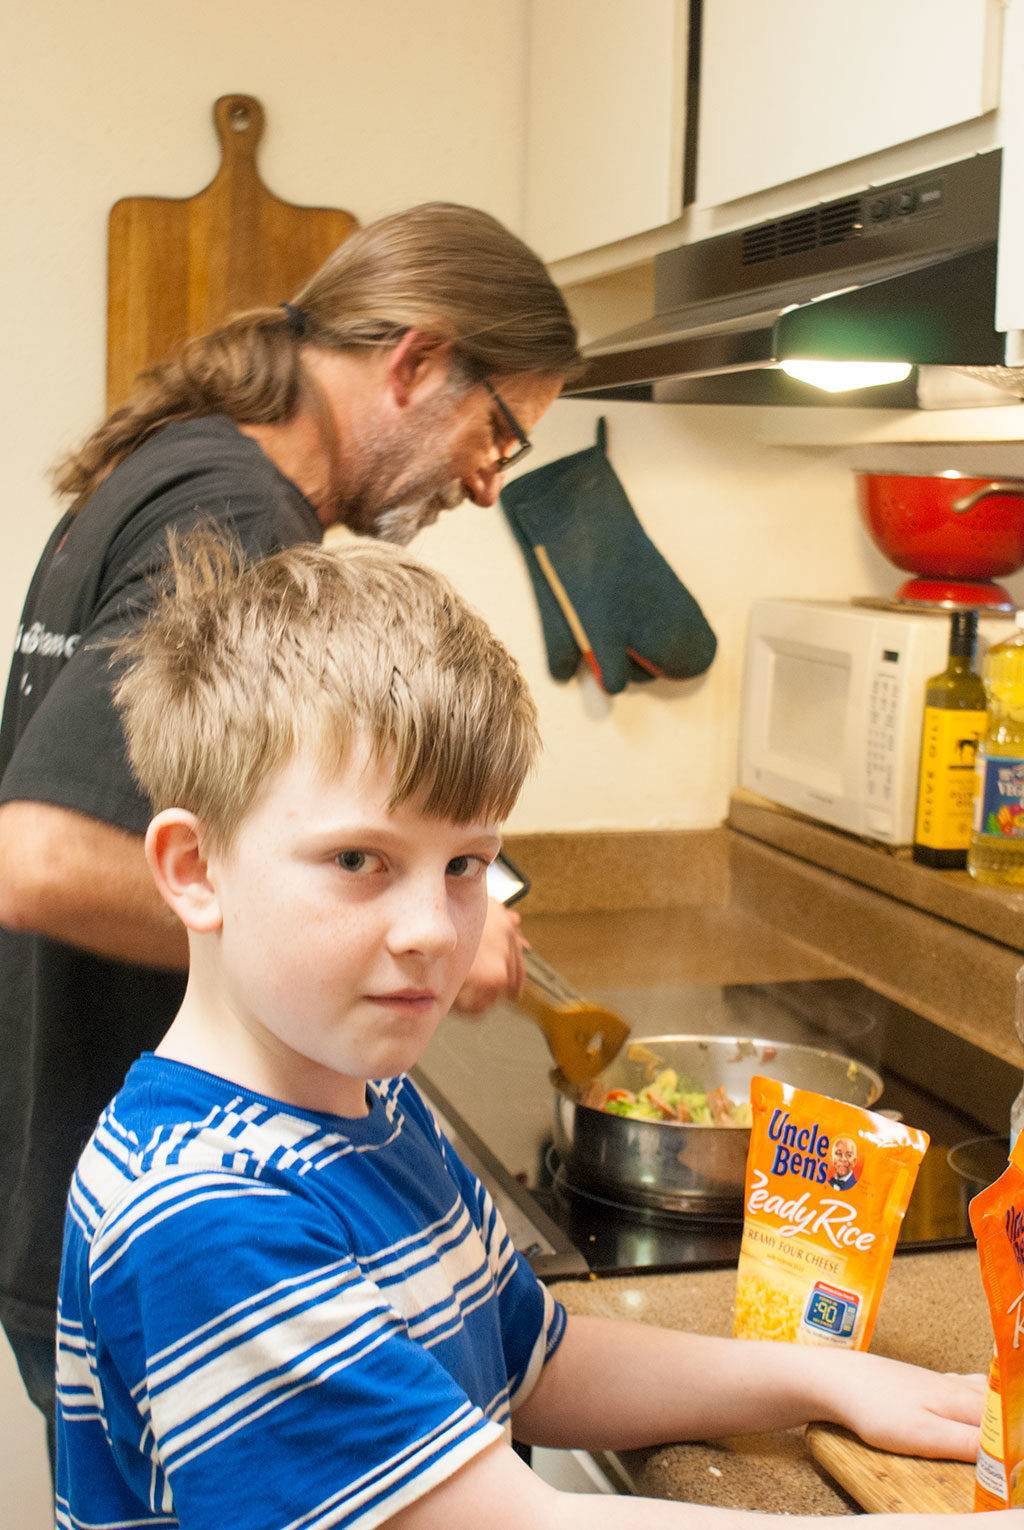 Almost time to add the Uncle Ben's Rice @UncleBens #BensBeginners #UncleBensPromo [ad]